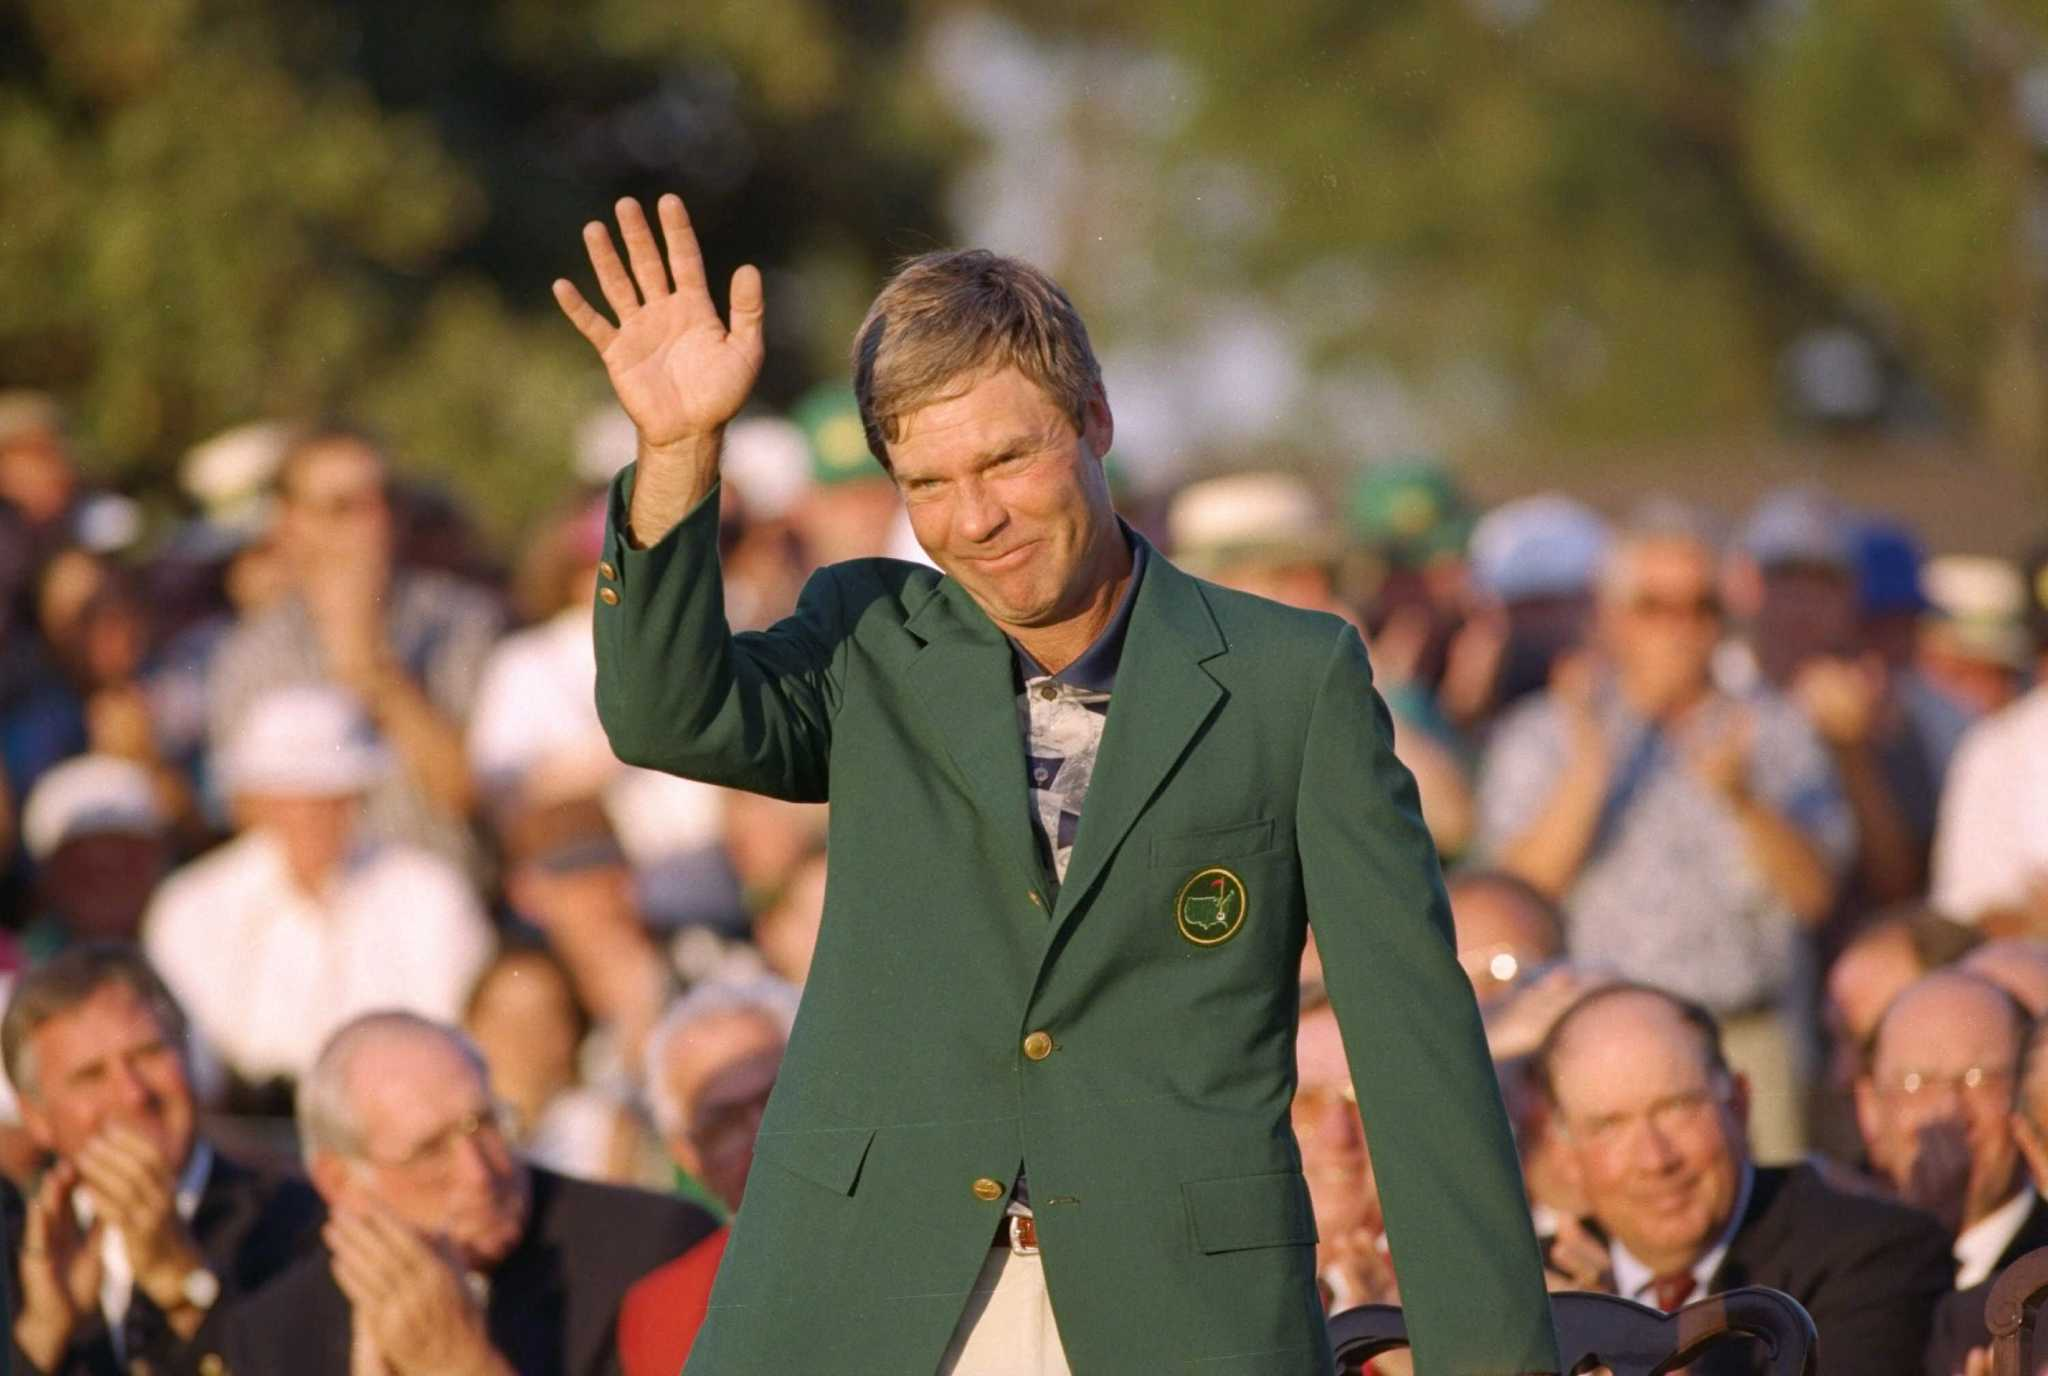 Ben Crenshaw happy to participate in 3M Greats of Golf scramble for first time